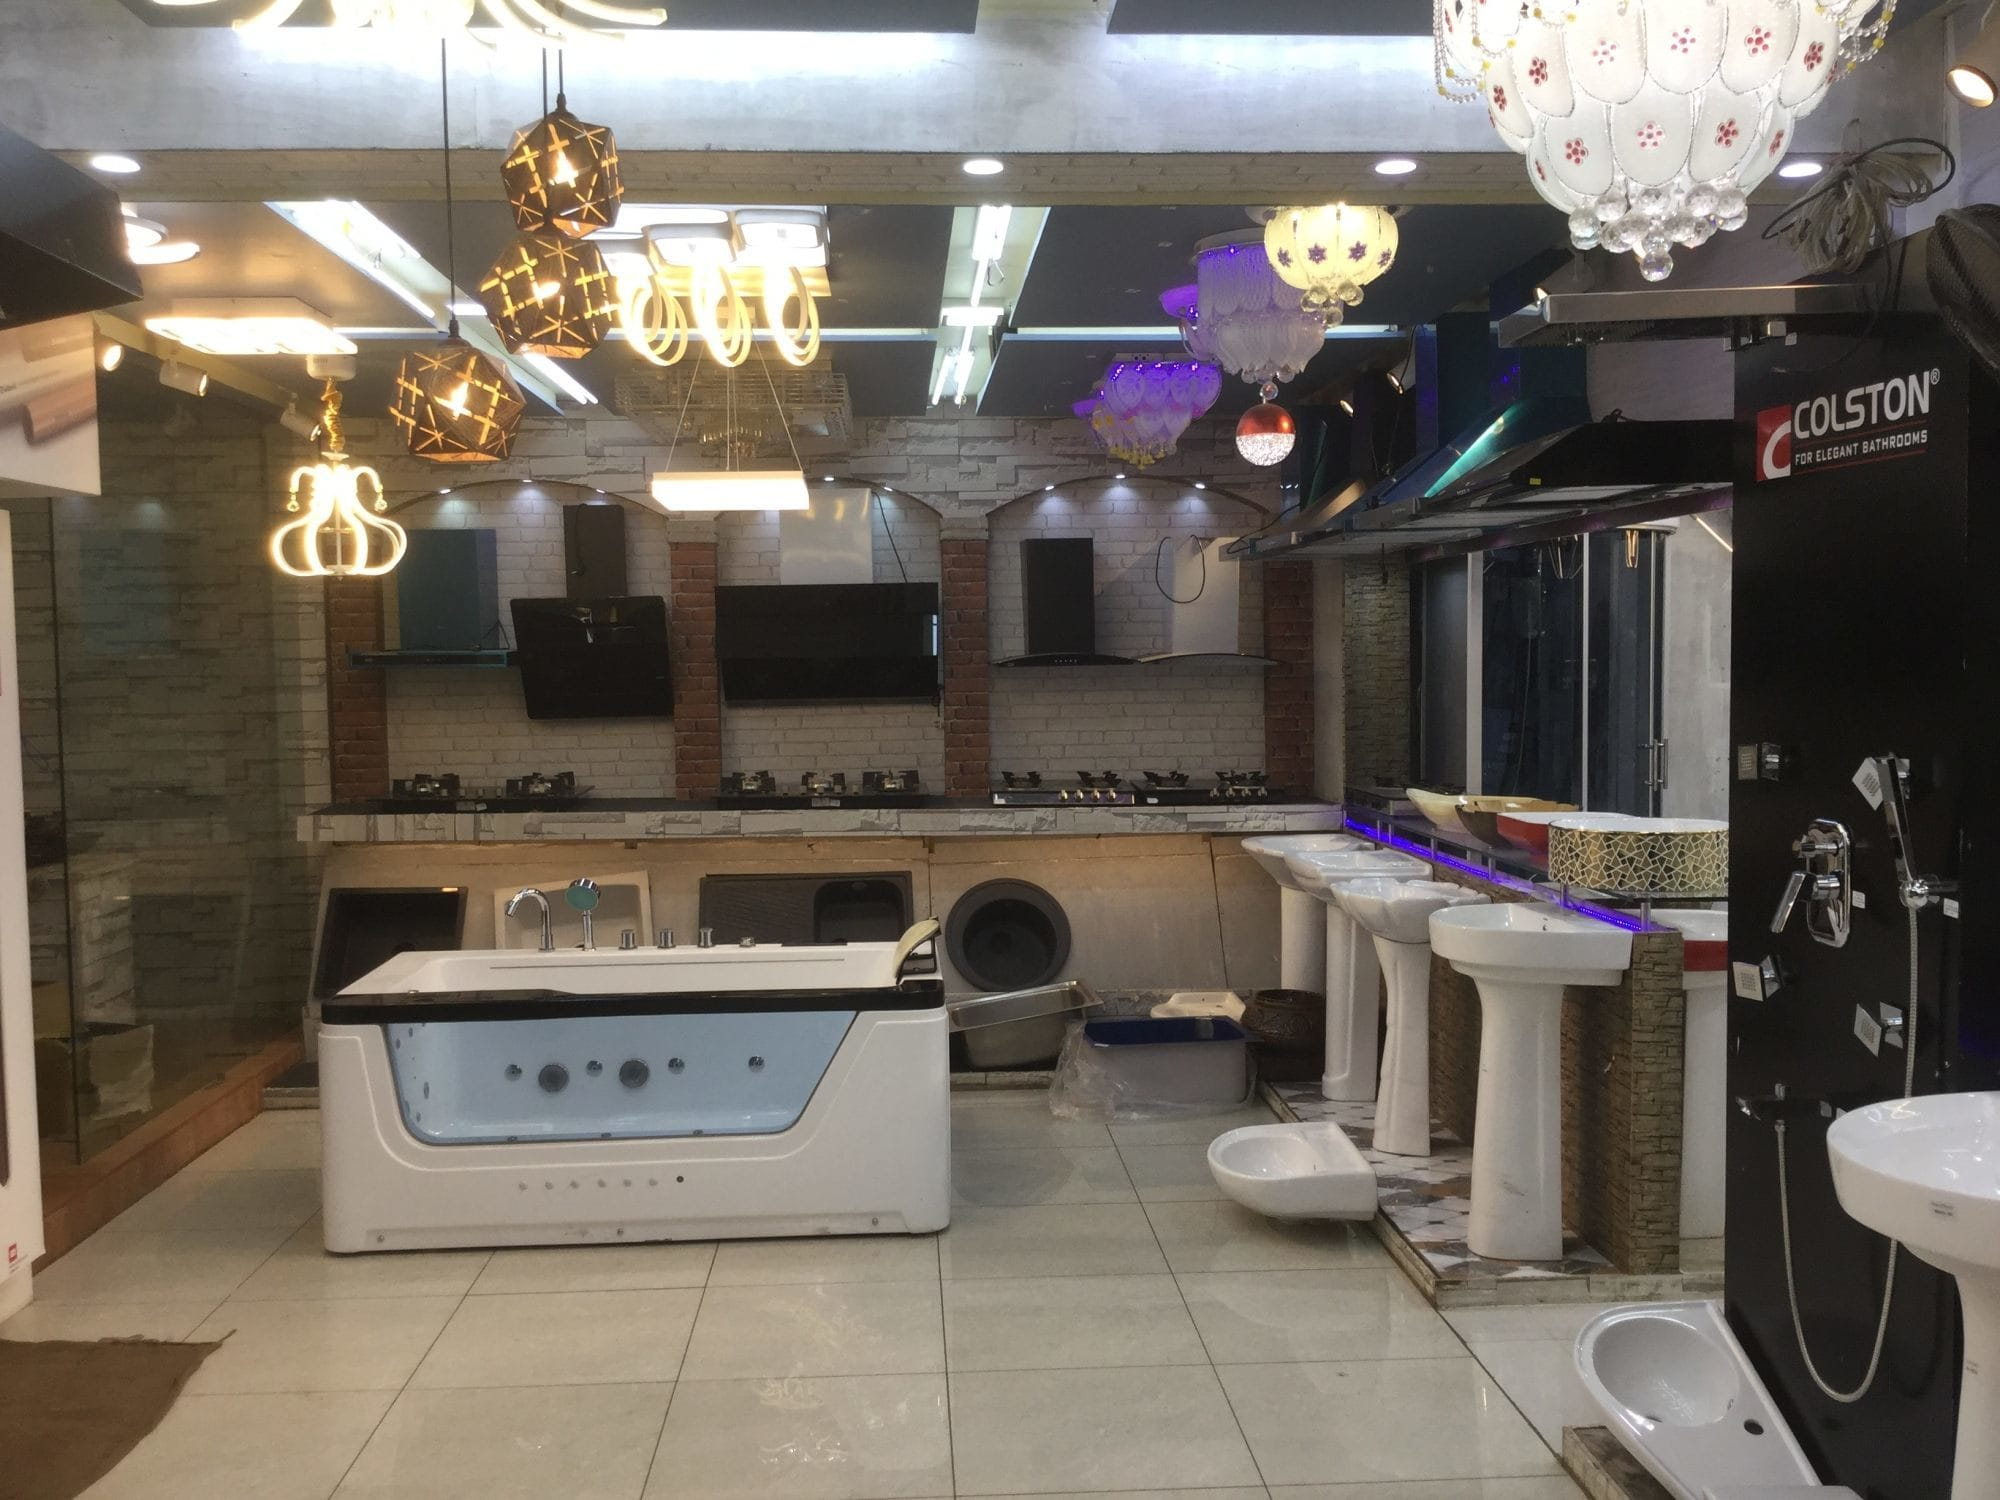 Toto Sanitaryware Dealers in Ongole HO, Ongole - Buy Sanitary Ware ...